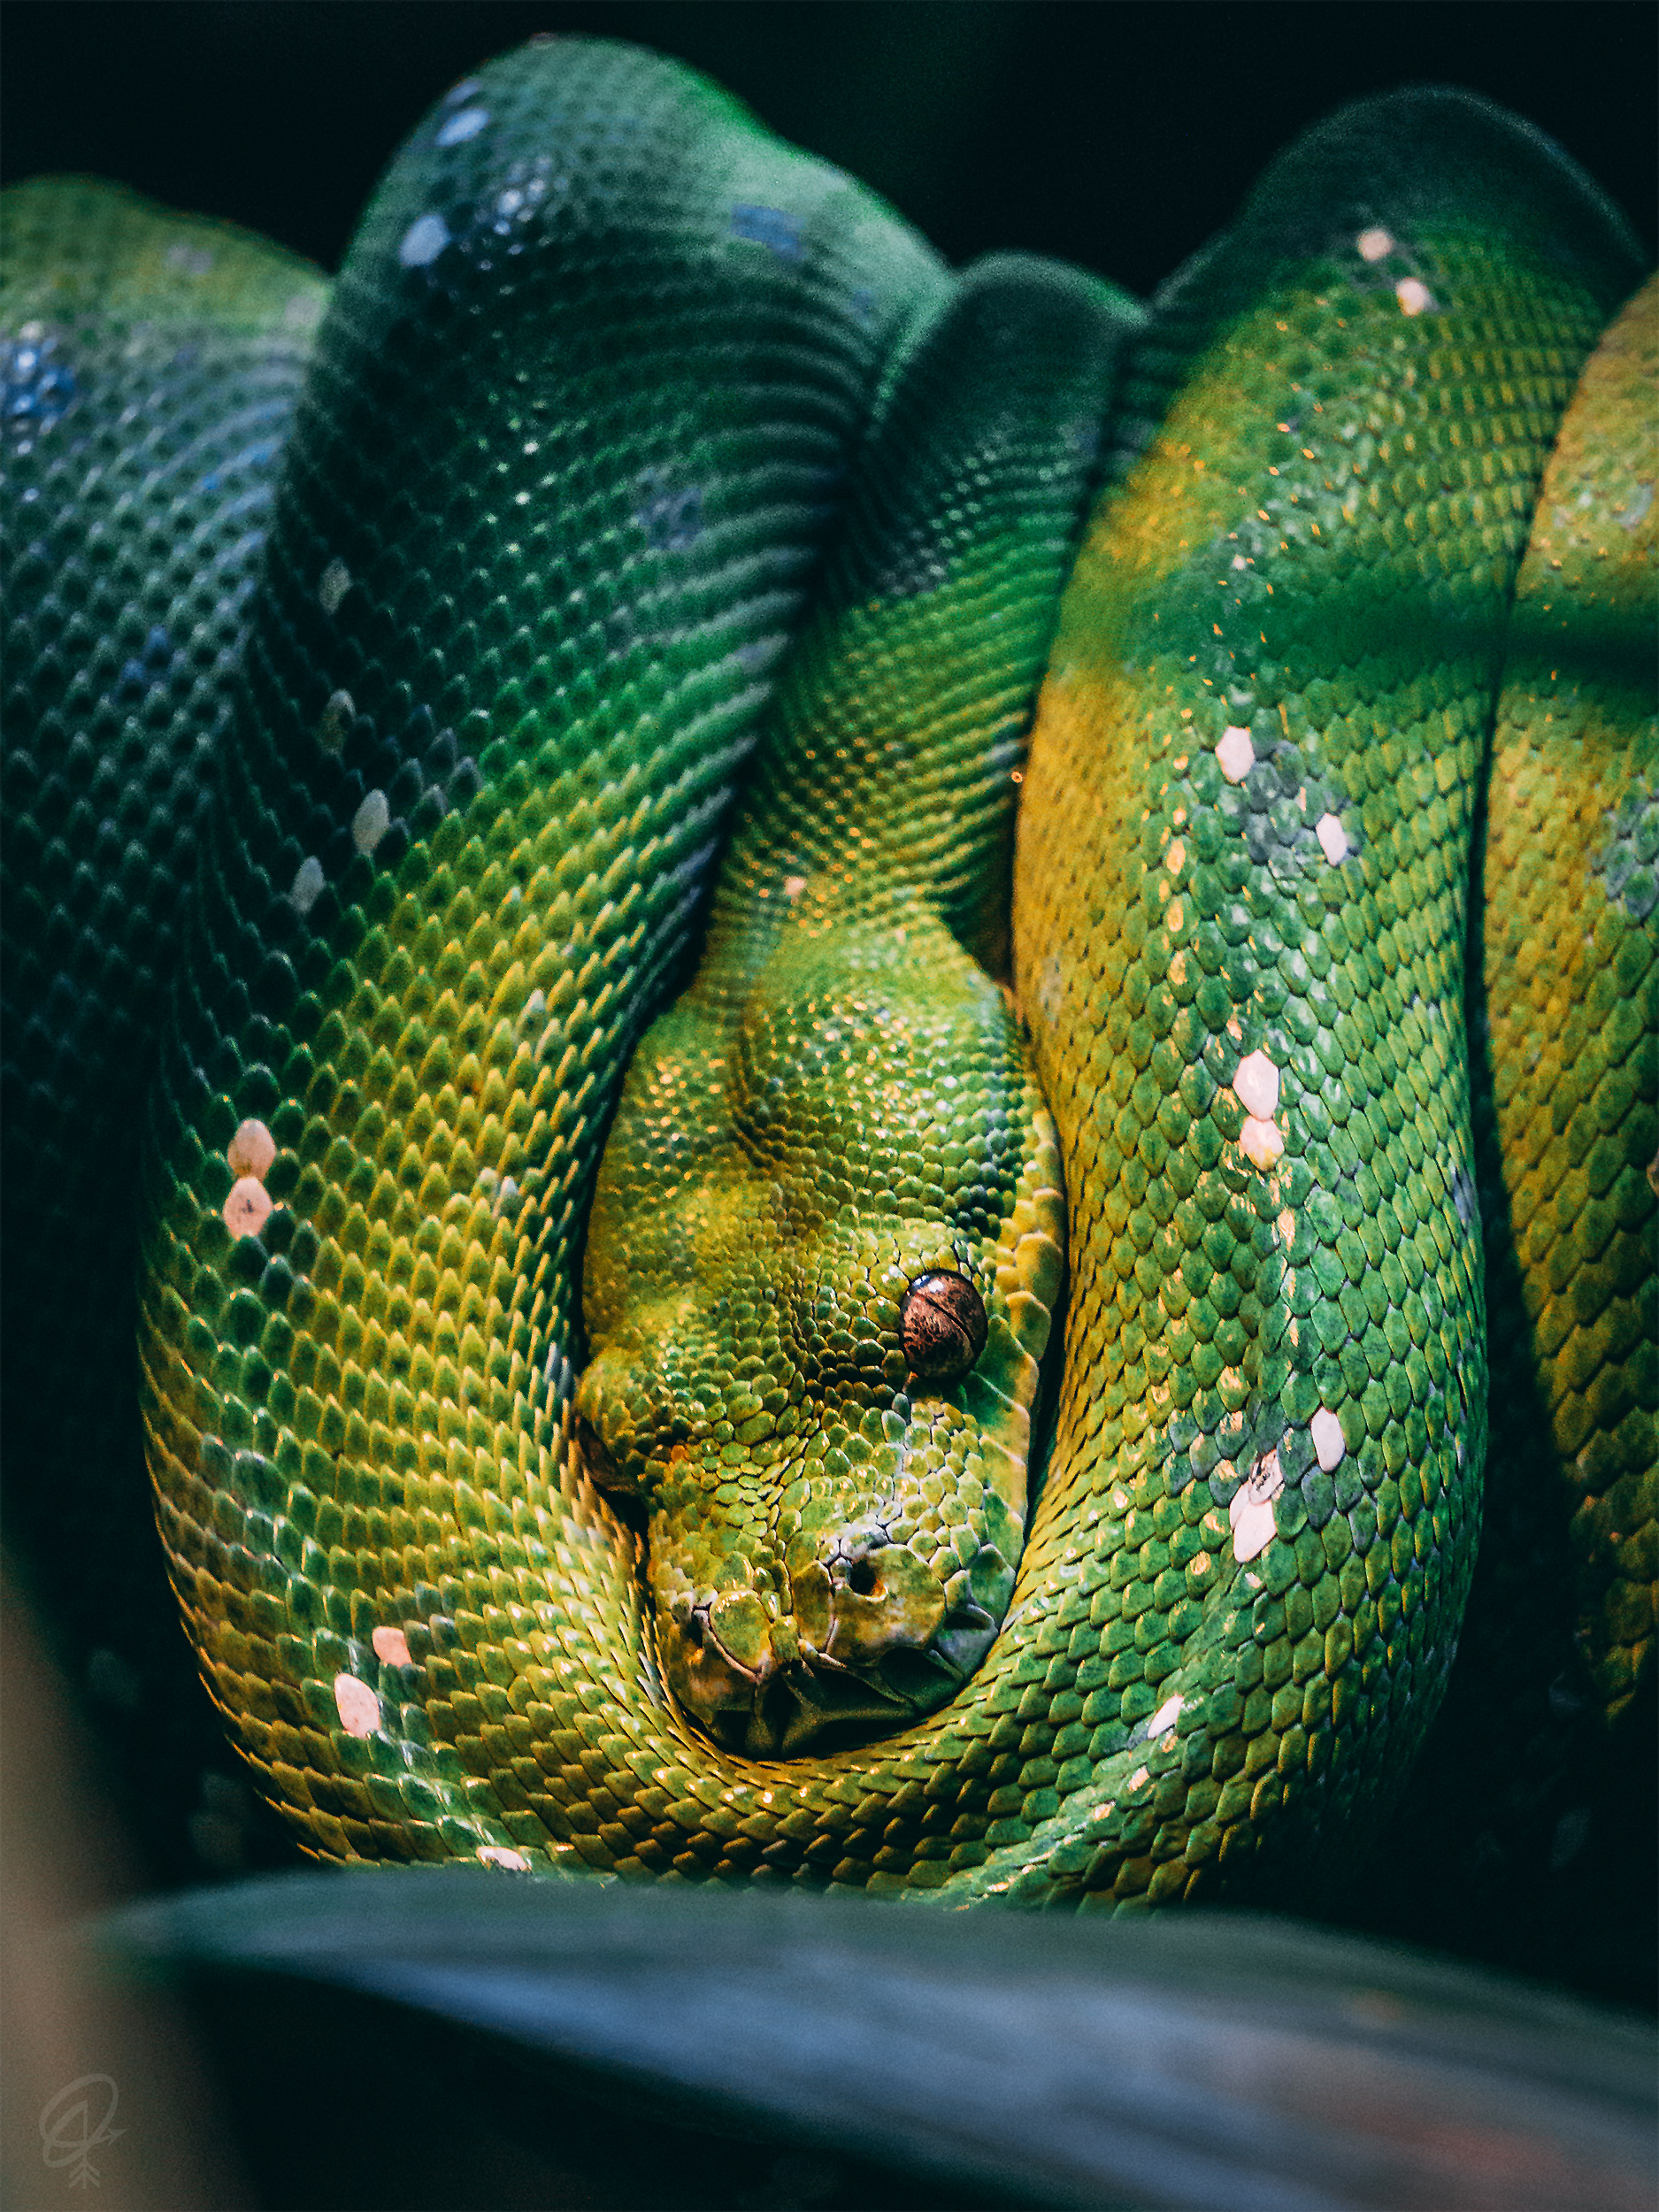 tree snake hanging from branch